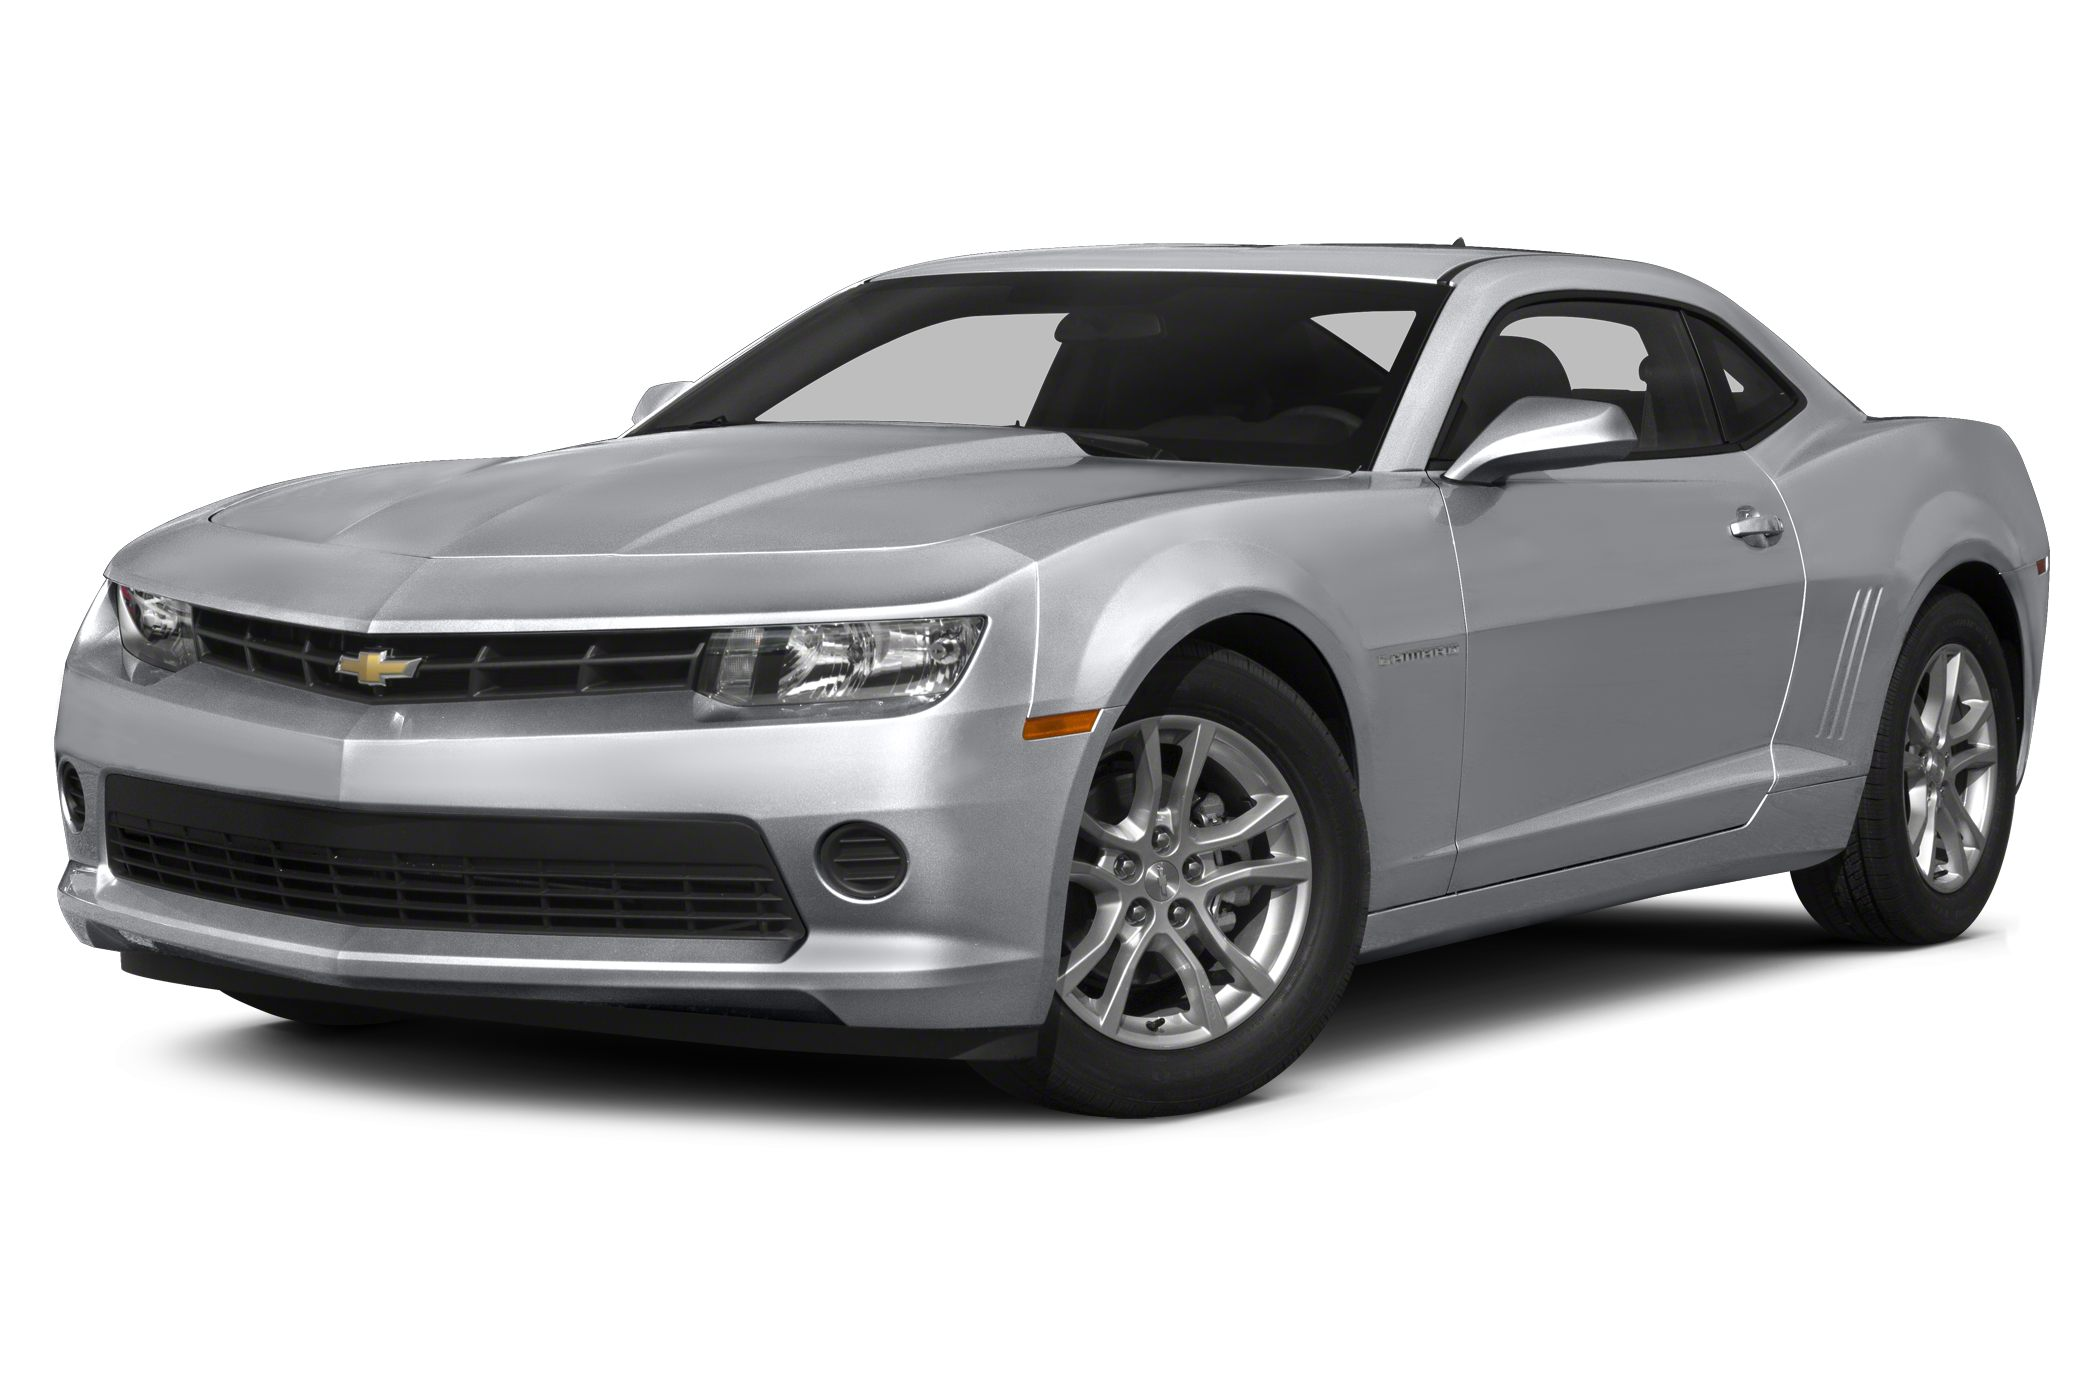 2015 Chevrolet Camaro 2LT Coupe for sale in Abilene for $35,590 with 0 miles